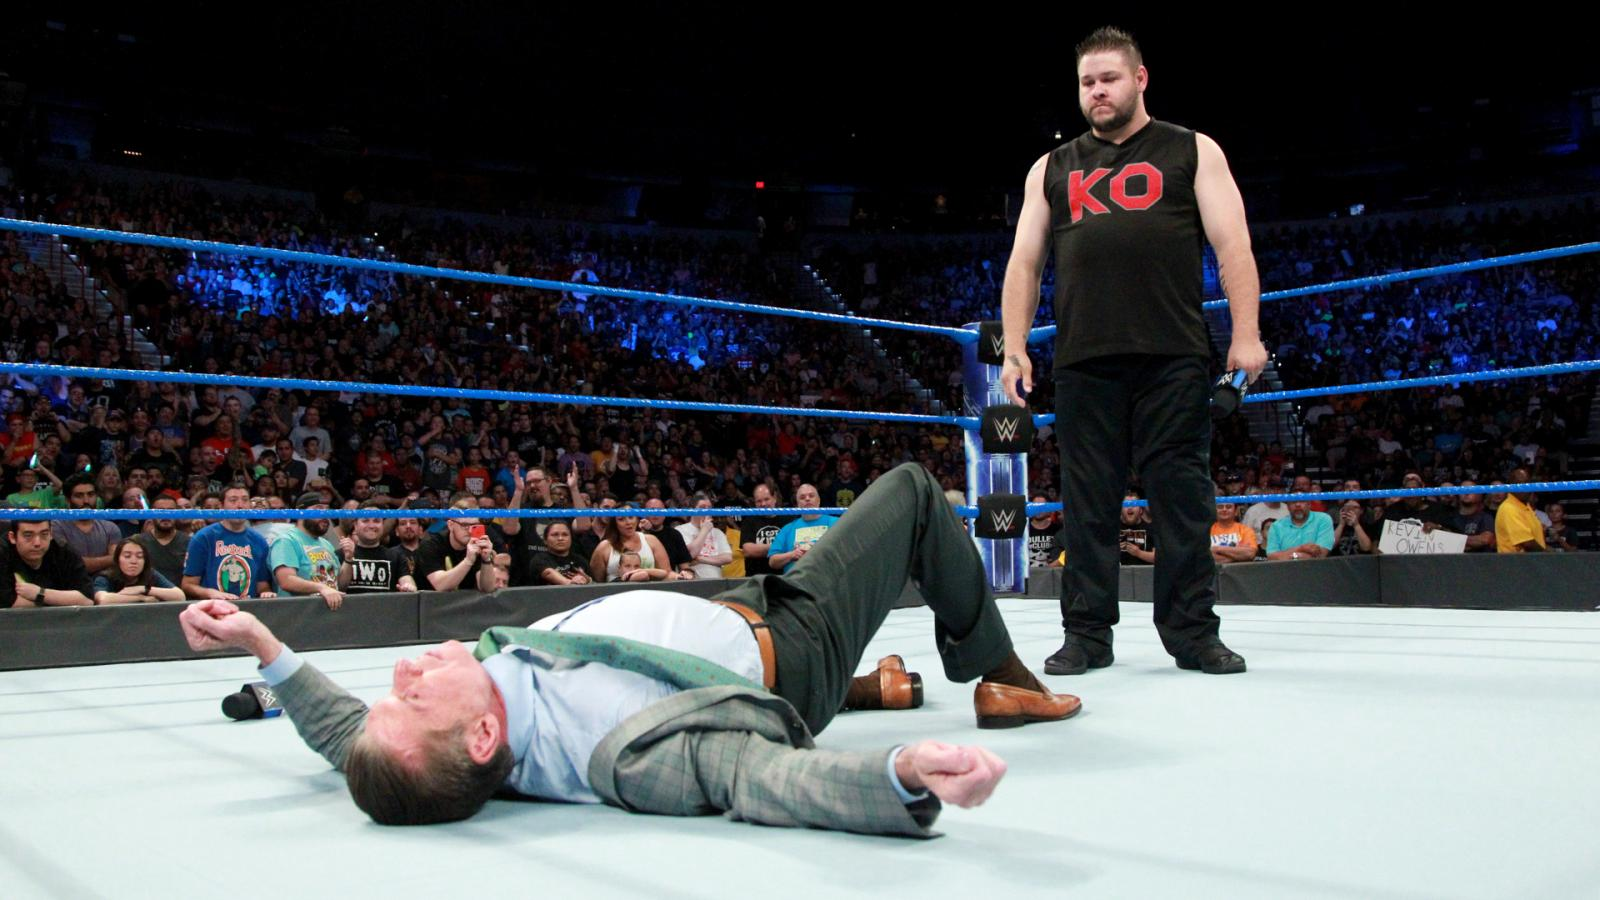 SmackDown Live Moments from Las Vegas